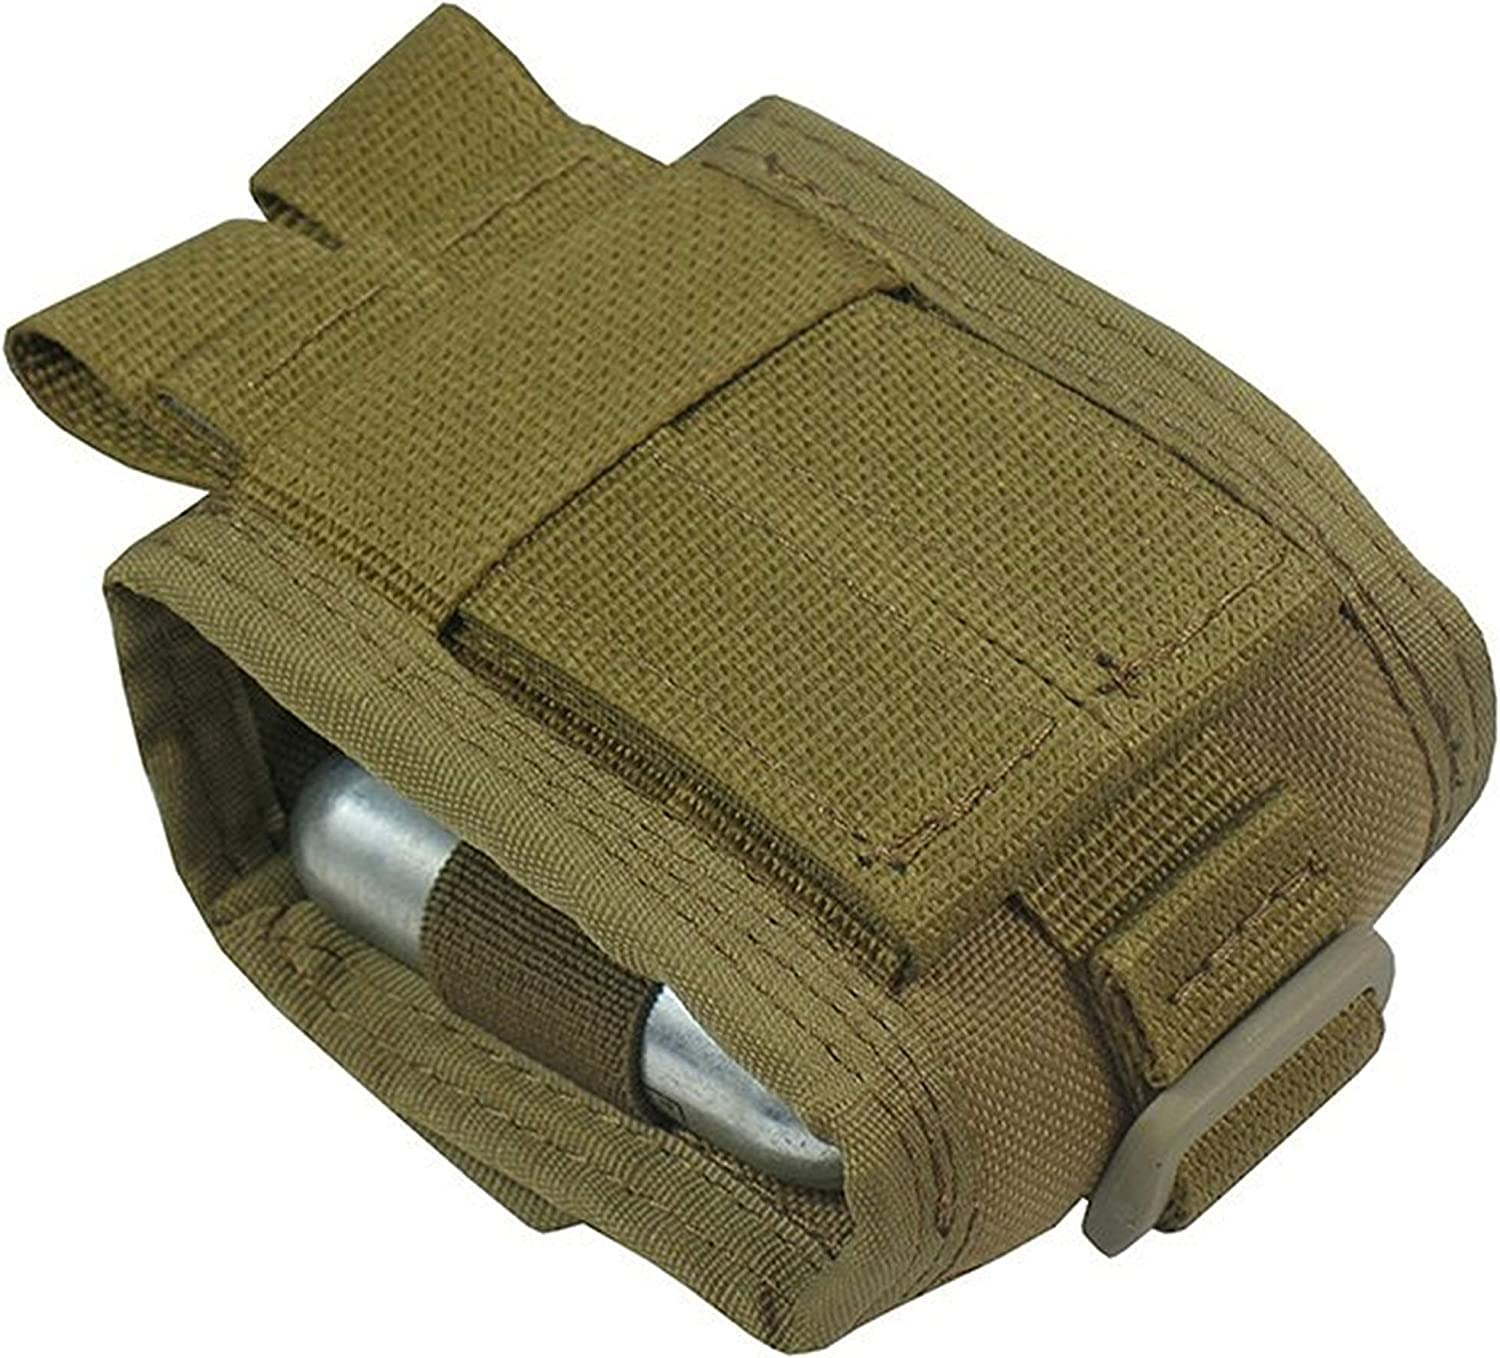 M.O.L.L.E Pouch for Two Tubes at 140-160 Balls Paintball